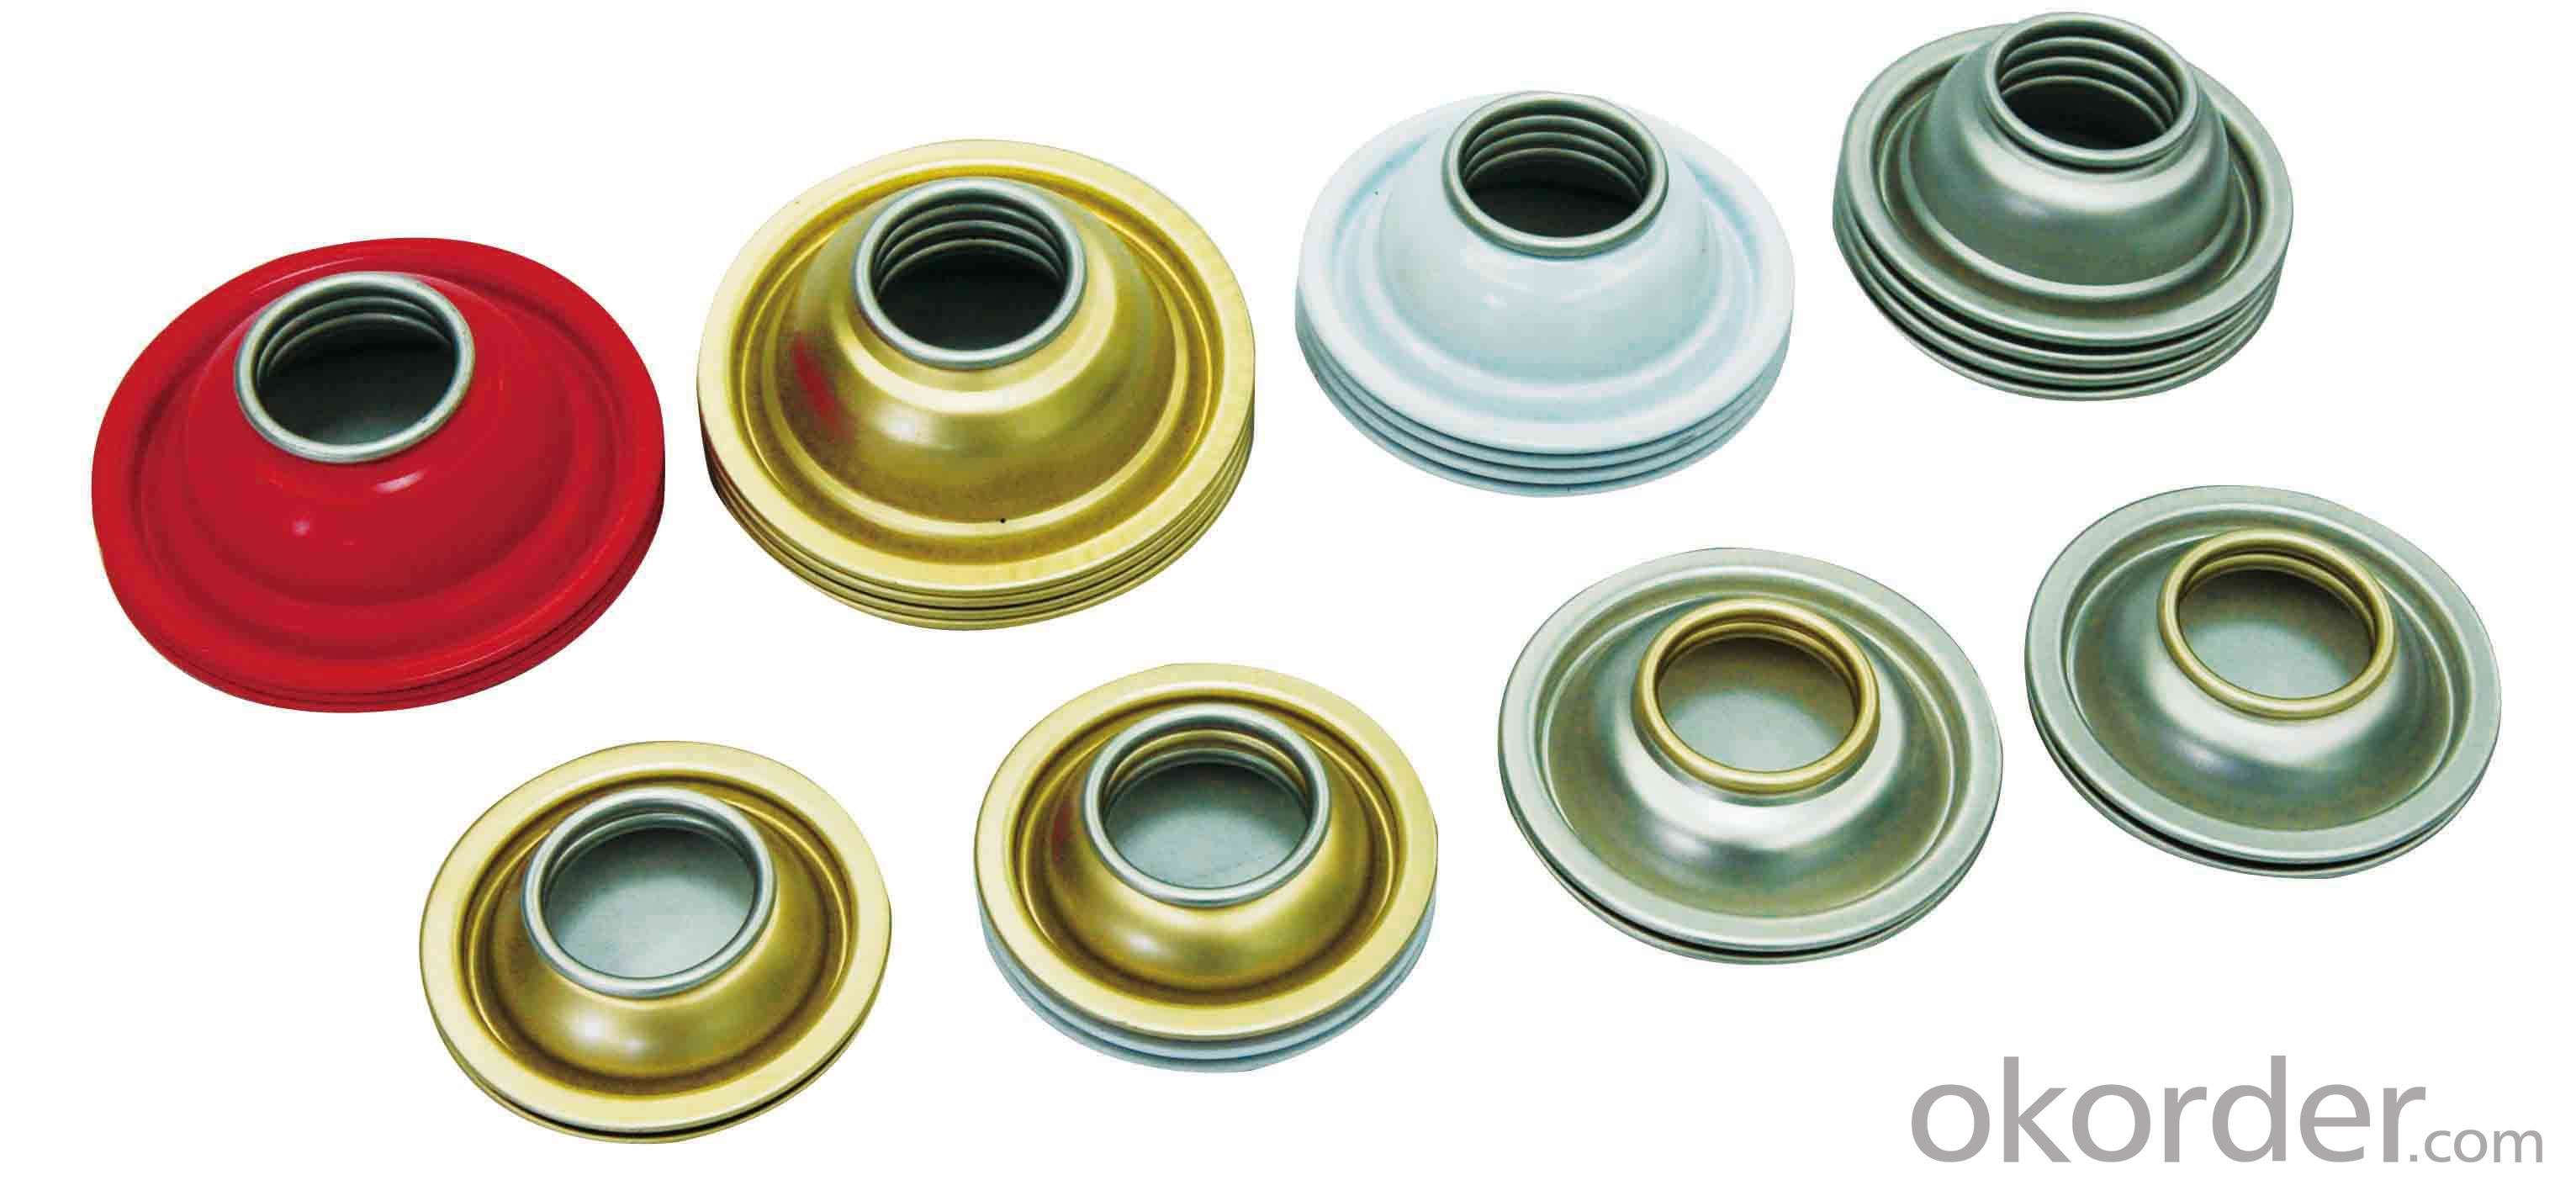 Electrical Tinplate For Food Cans & Industrial Cans